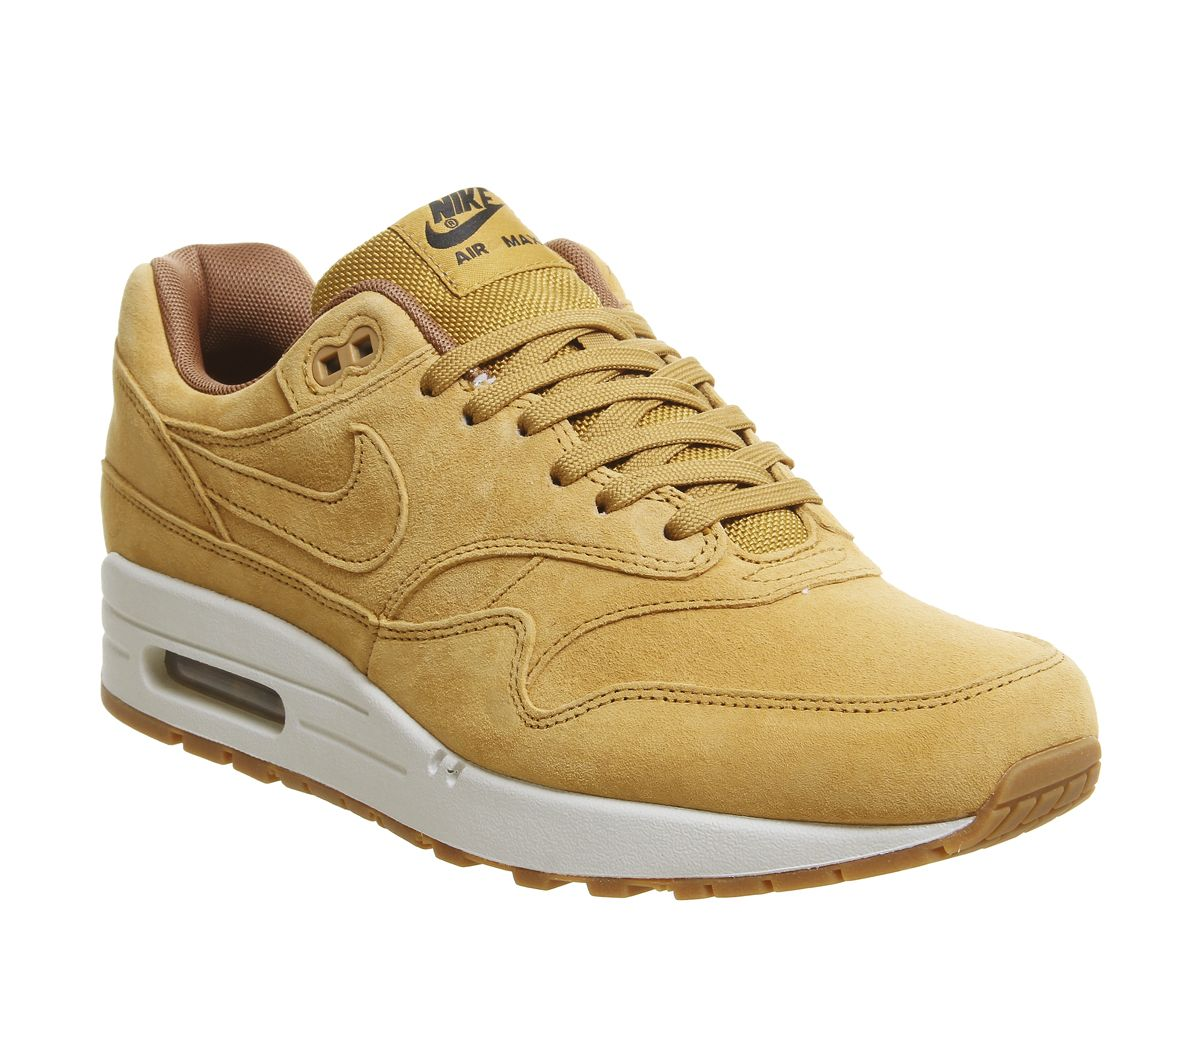 the best attitude 77be4 ab34b Nike Air Max 1 Trainers Wheat Light Bone Gum - His trainers